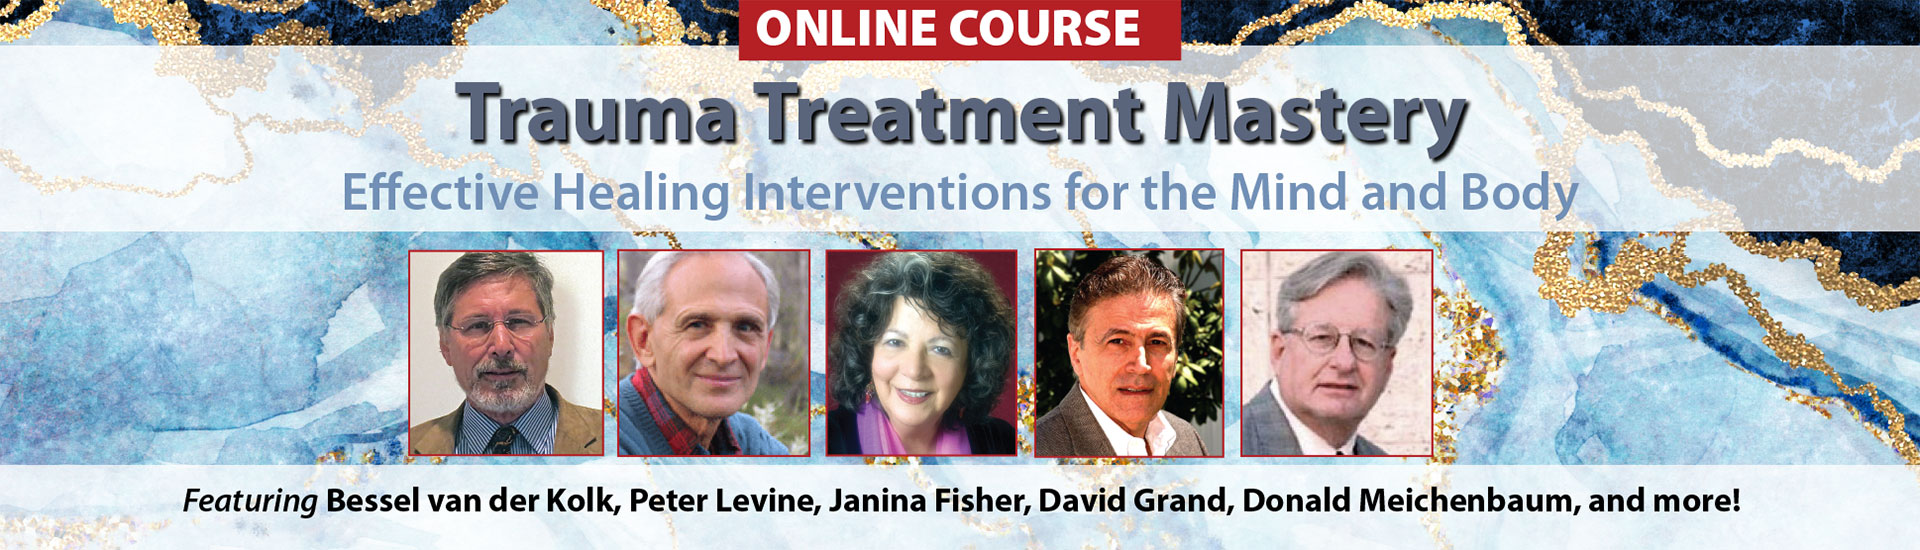 Trauma Treatment Mastery Online Course